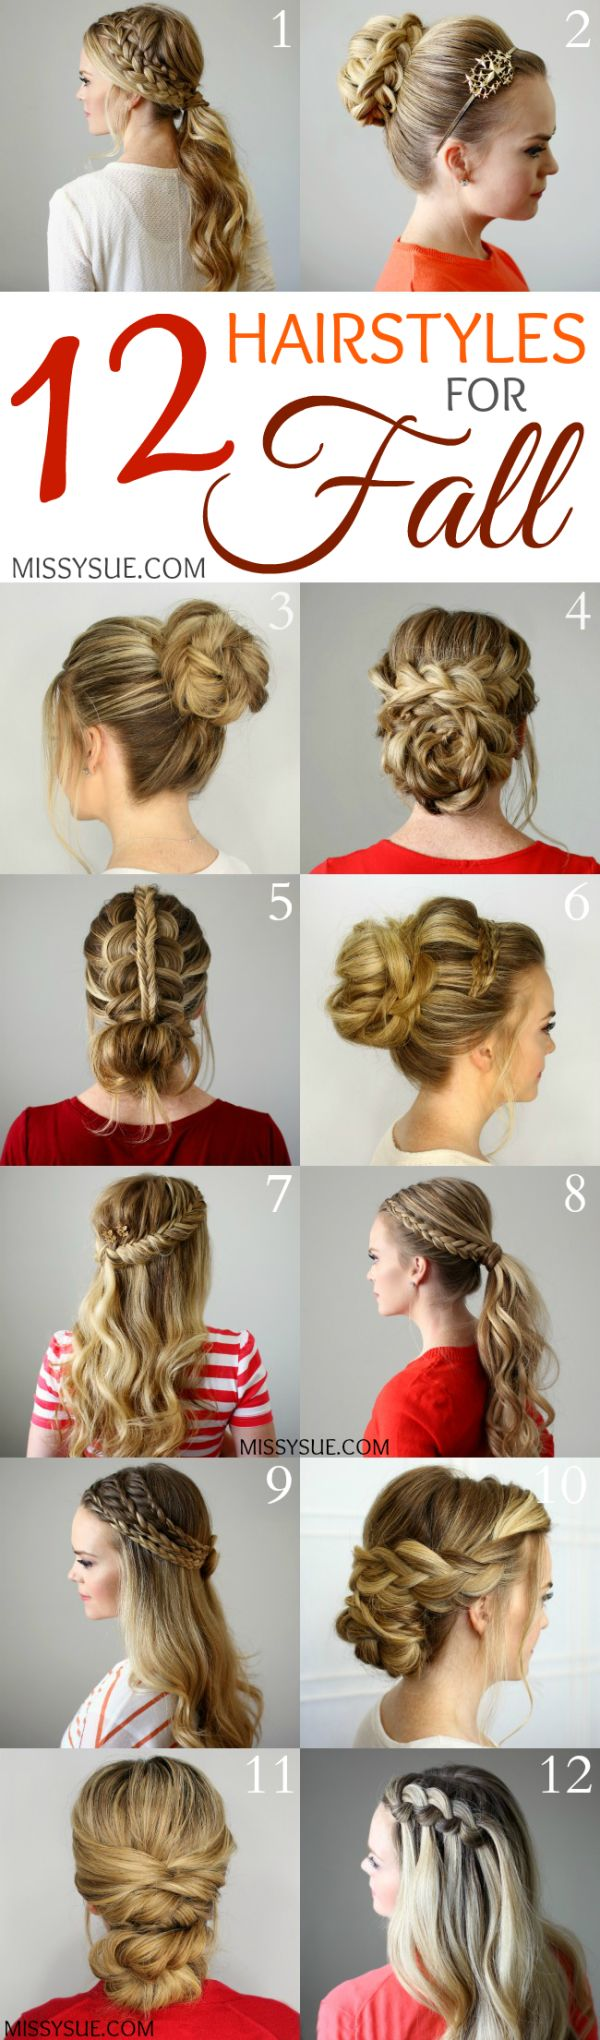 best 25+ fall hairstyles ideas on pinterest | cute fall hairstyles